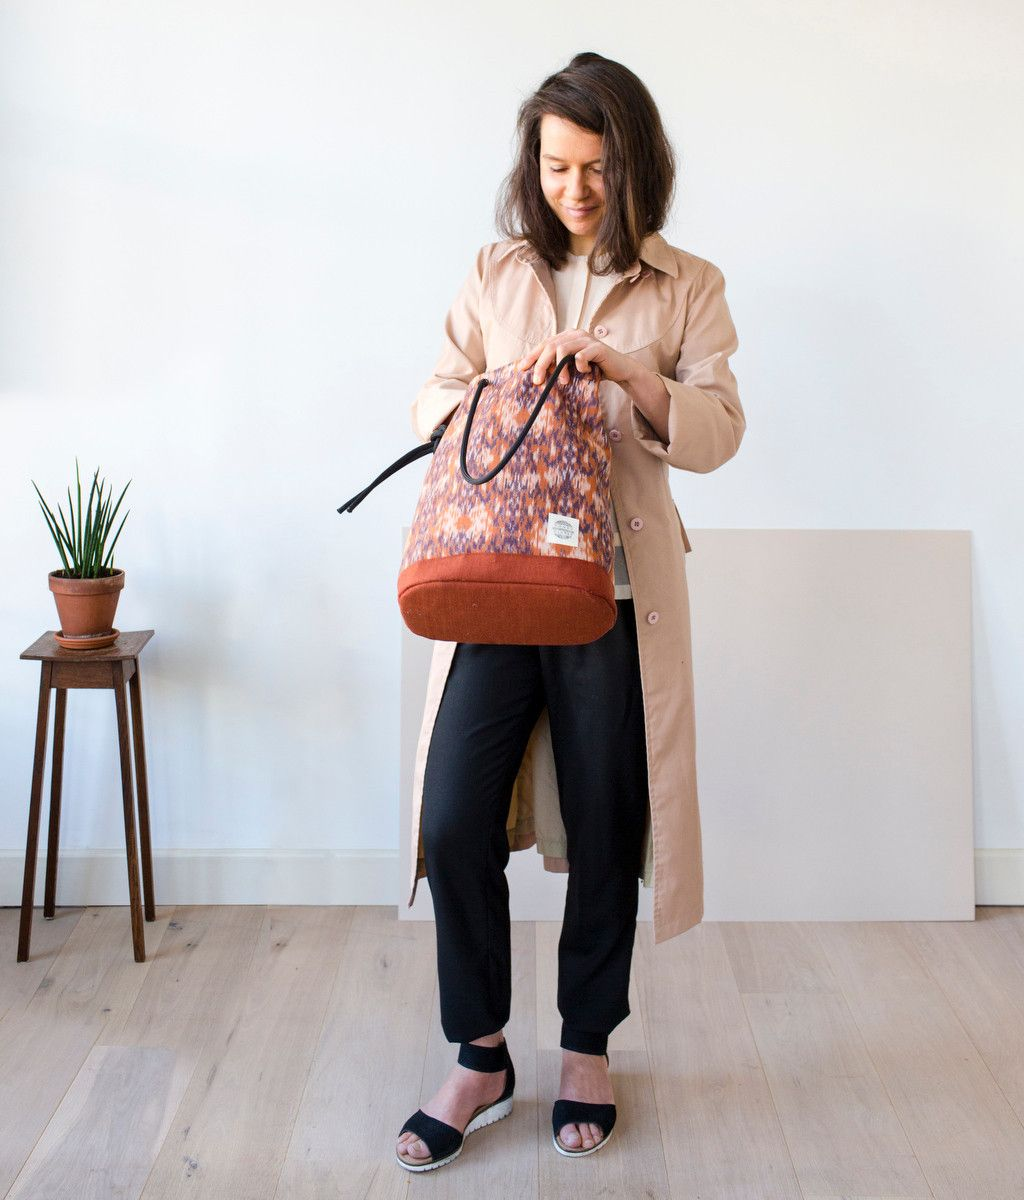 Honey Clarke Biennale Bag Nomad. Two-in-one backpack and tote. Handmade in Amsterdam